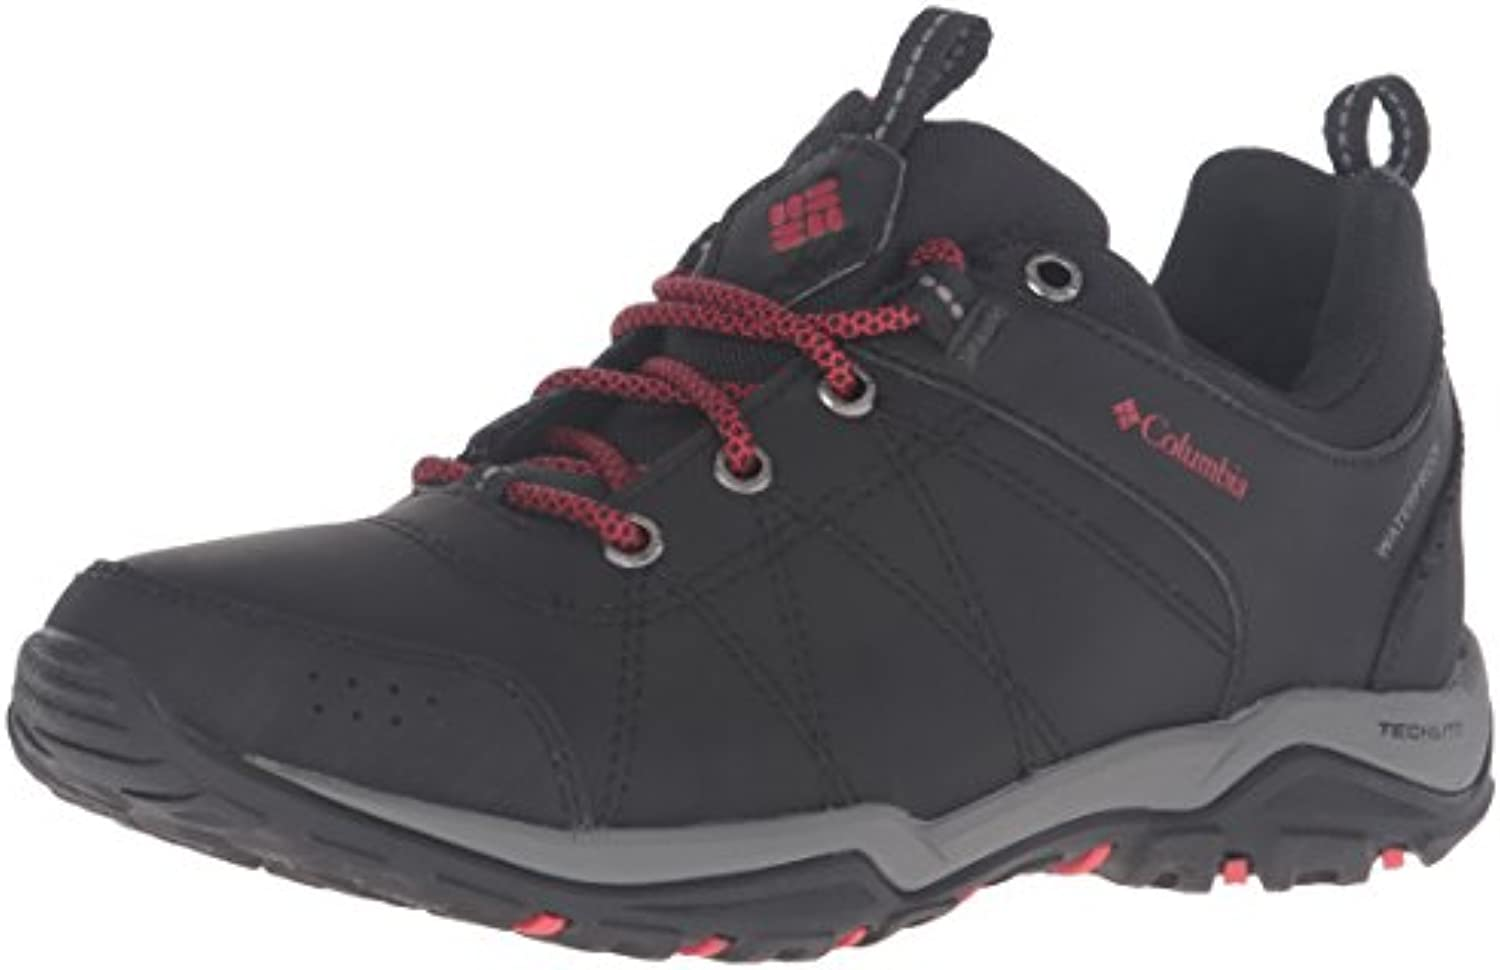 Columbia Fire Venture Low, Chaussures Chaussures Chaussures Multisport Outdoor FemmeB0183LX4BOParent 01395c